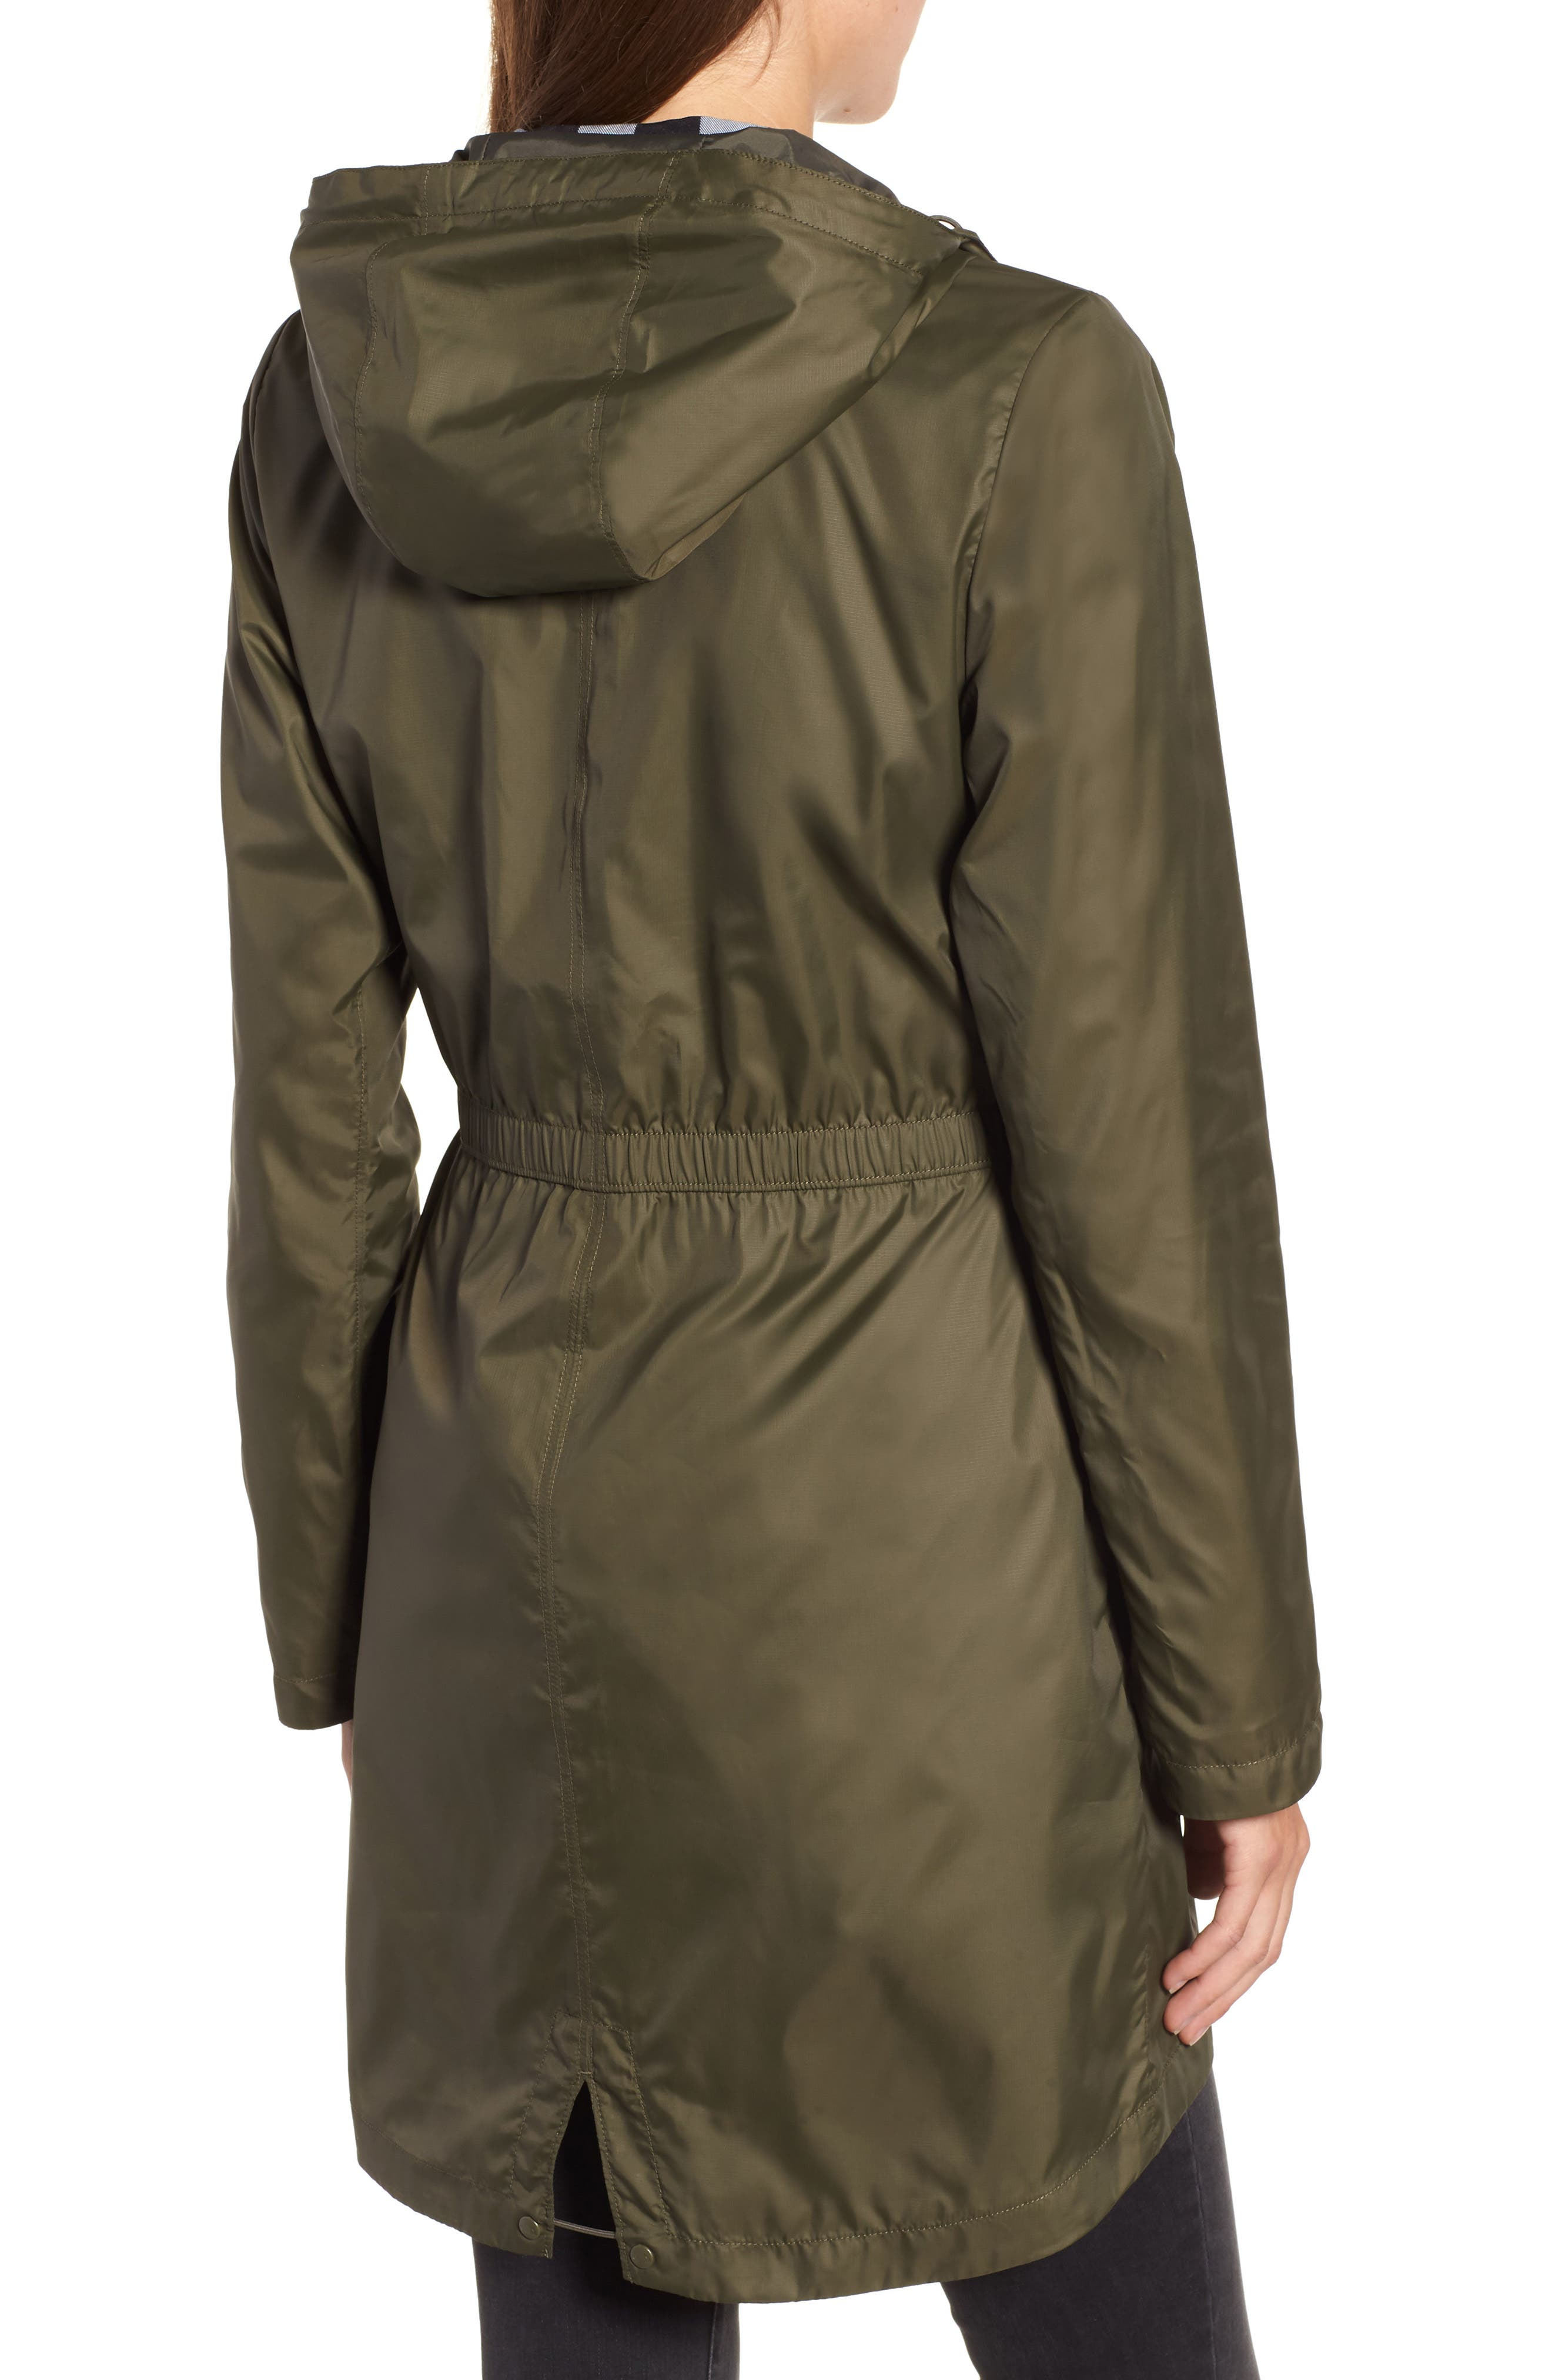 Rissy 2 Wind Resistant Jacket,                             Alternate thumbnail 2, color,                             NEW TAUPE GREEN